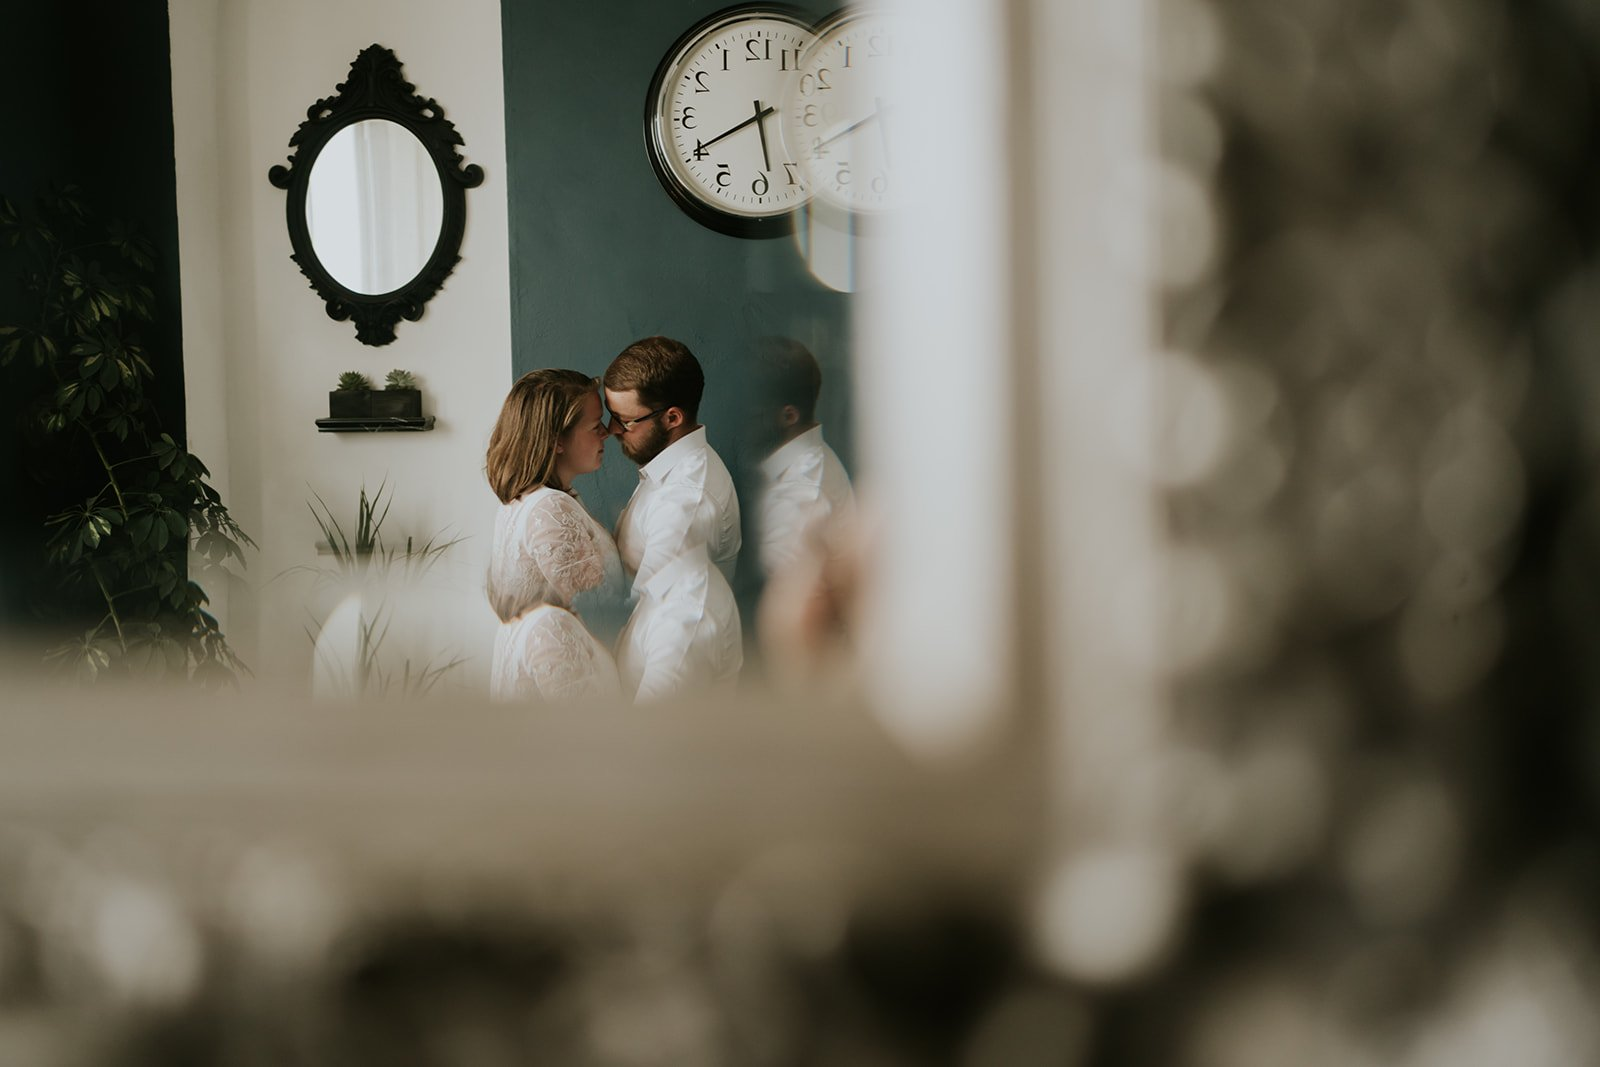 A reflection of a couple kissing in a mirror